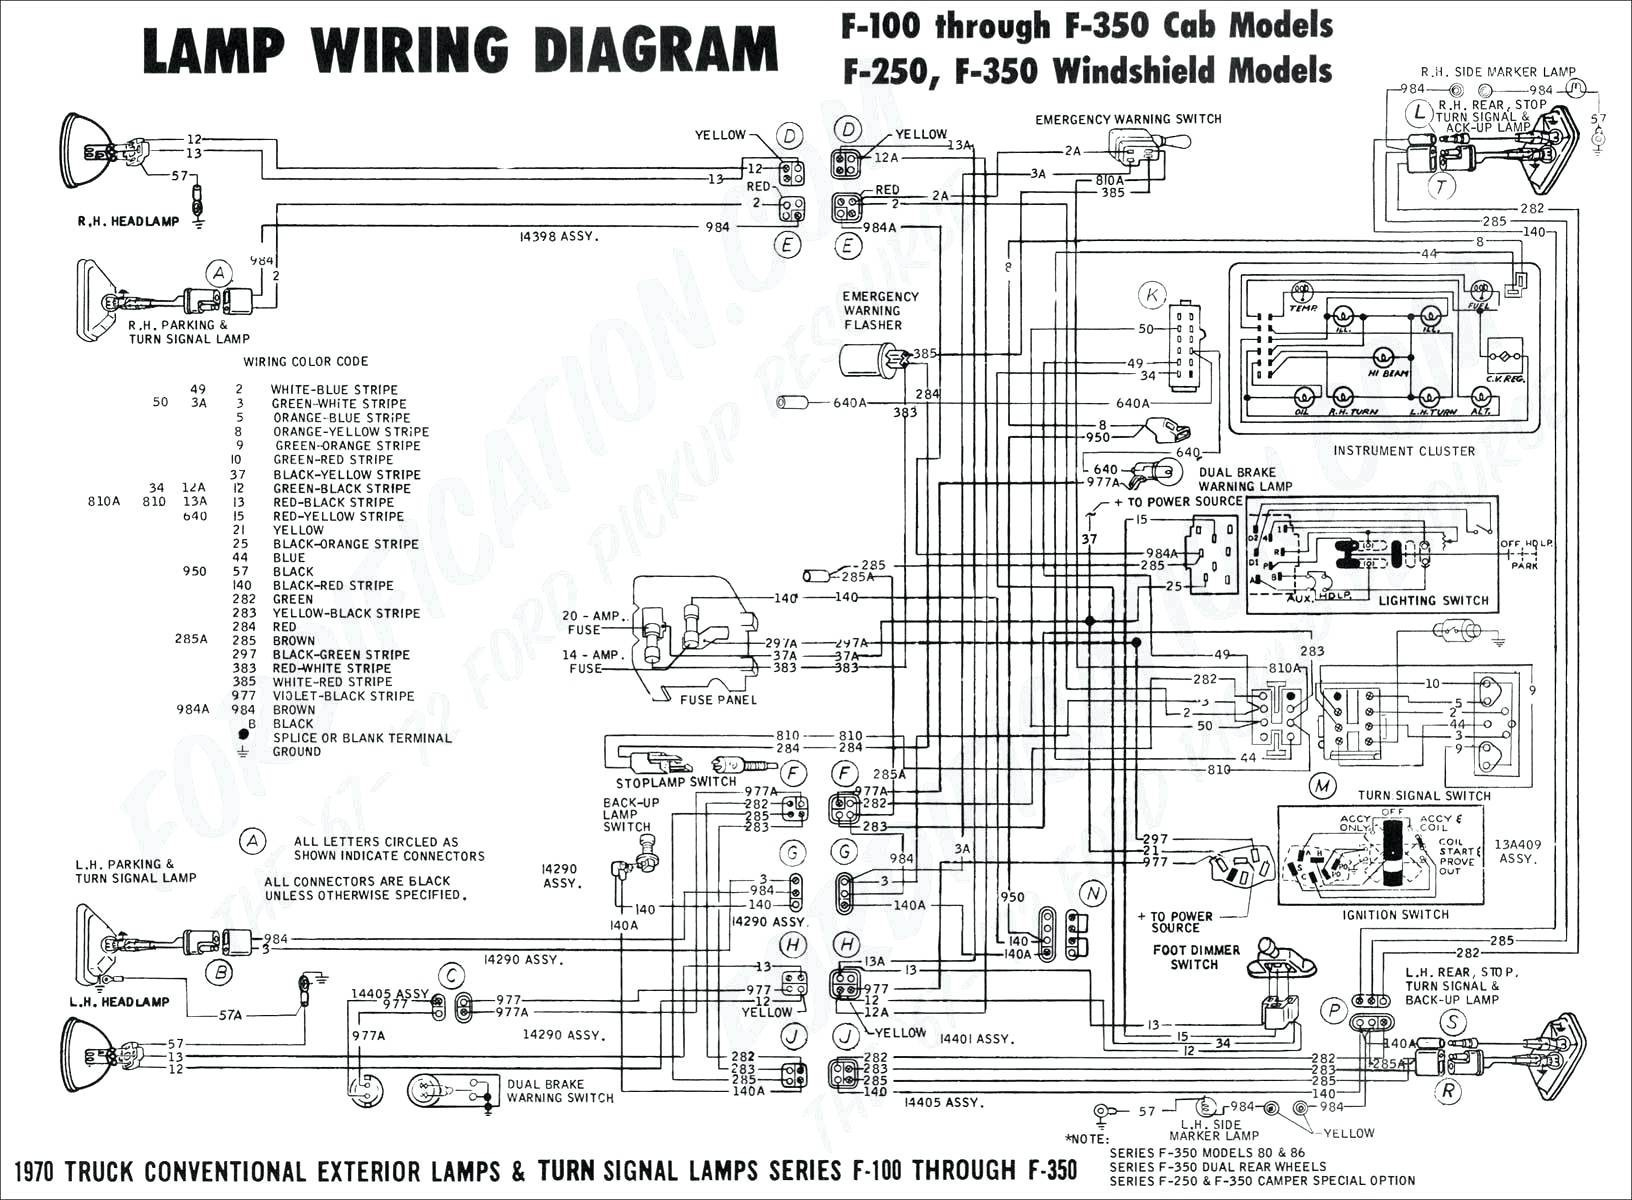 [TBQL_4184]  9FC Free Download Hss Wiring Diagram | Wiring Library | Free Download S Series Wiring Diagram |  | Wiring Library